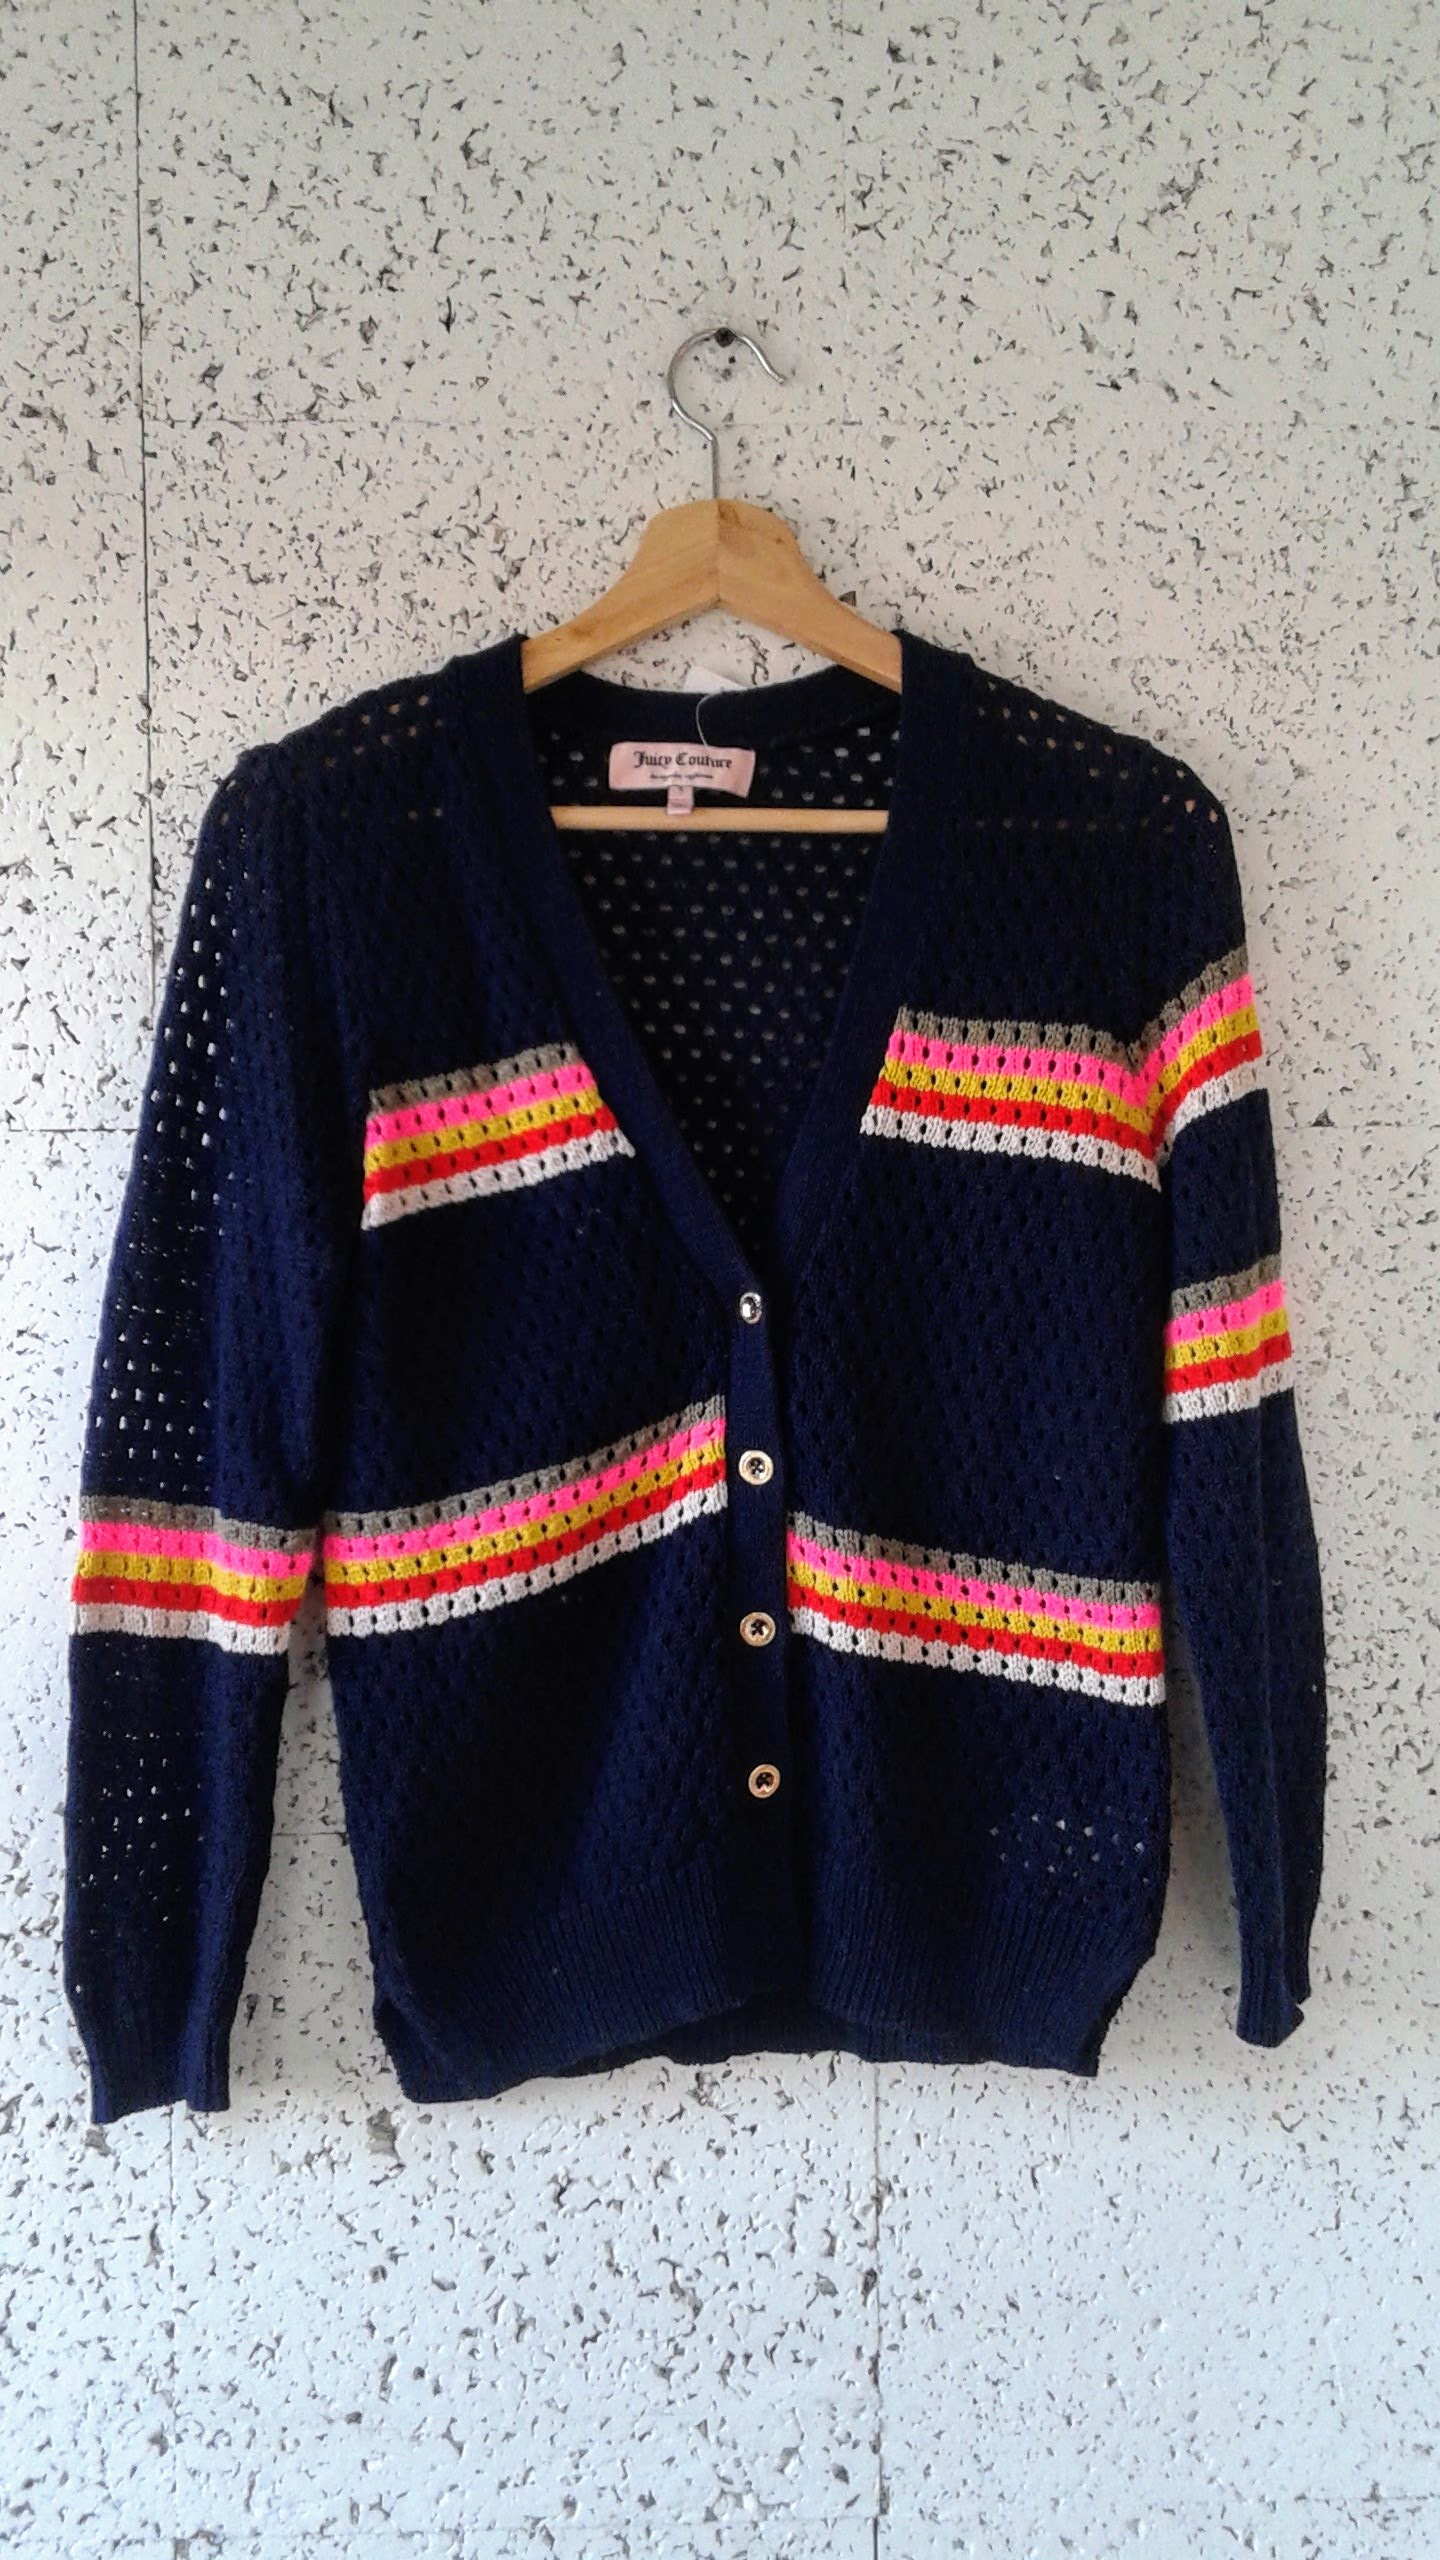 Juicy Couture cardigan; Size S, $30